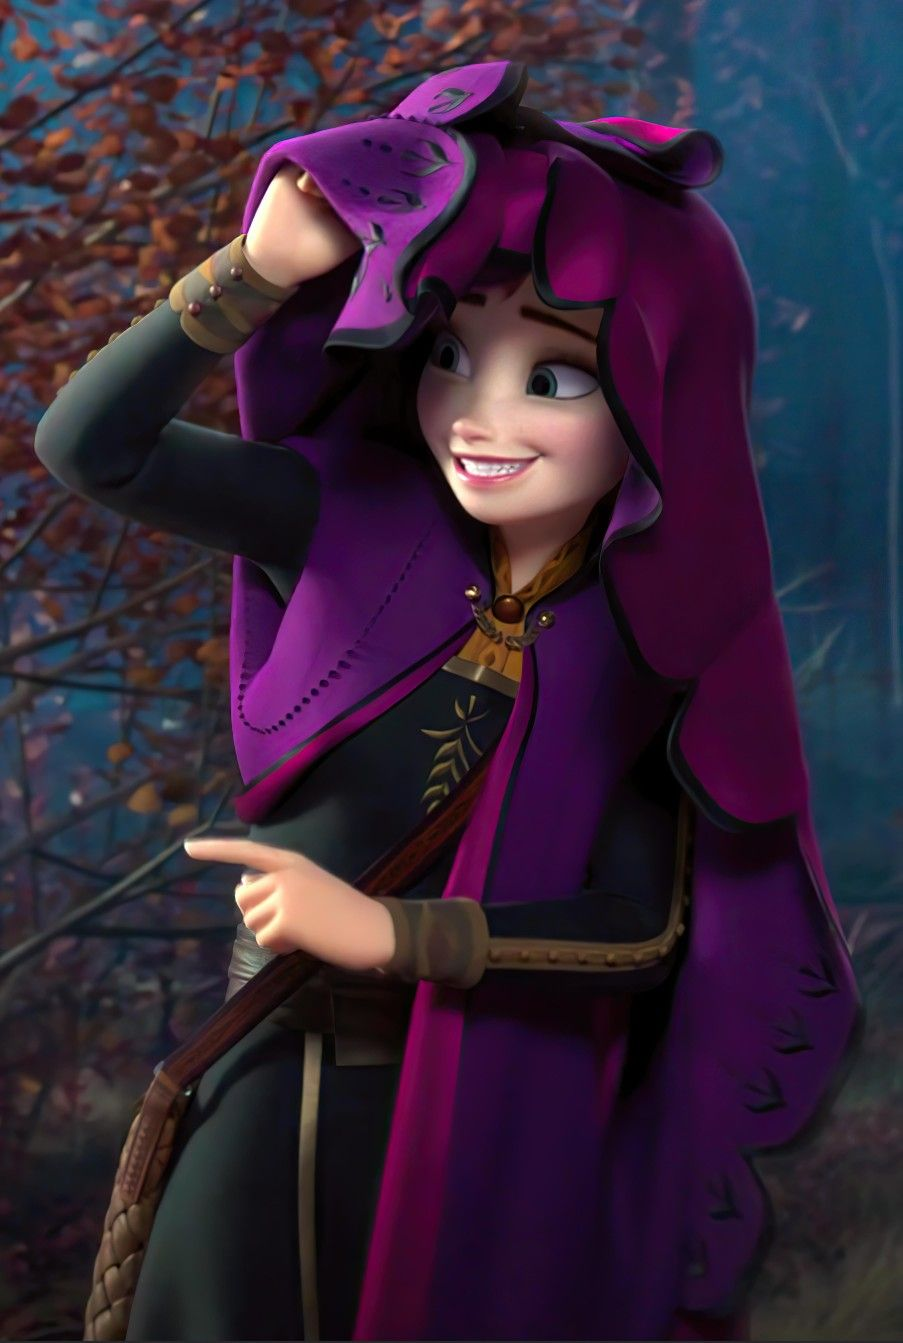 Pin By Gabbi And Ava On Frozen In 2020 Disney Princess Frozen Disney Princess Pictures Frozen Disney Movie